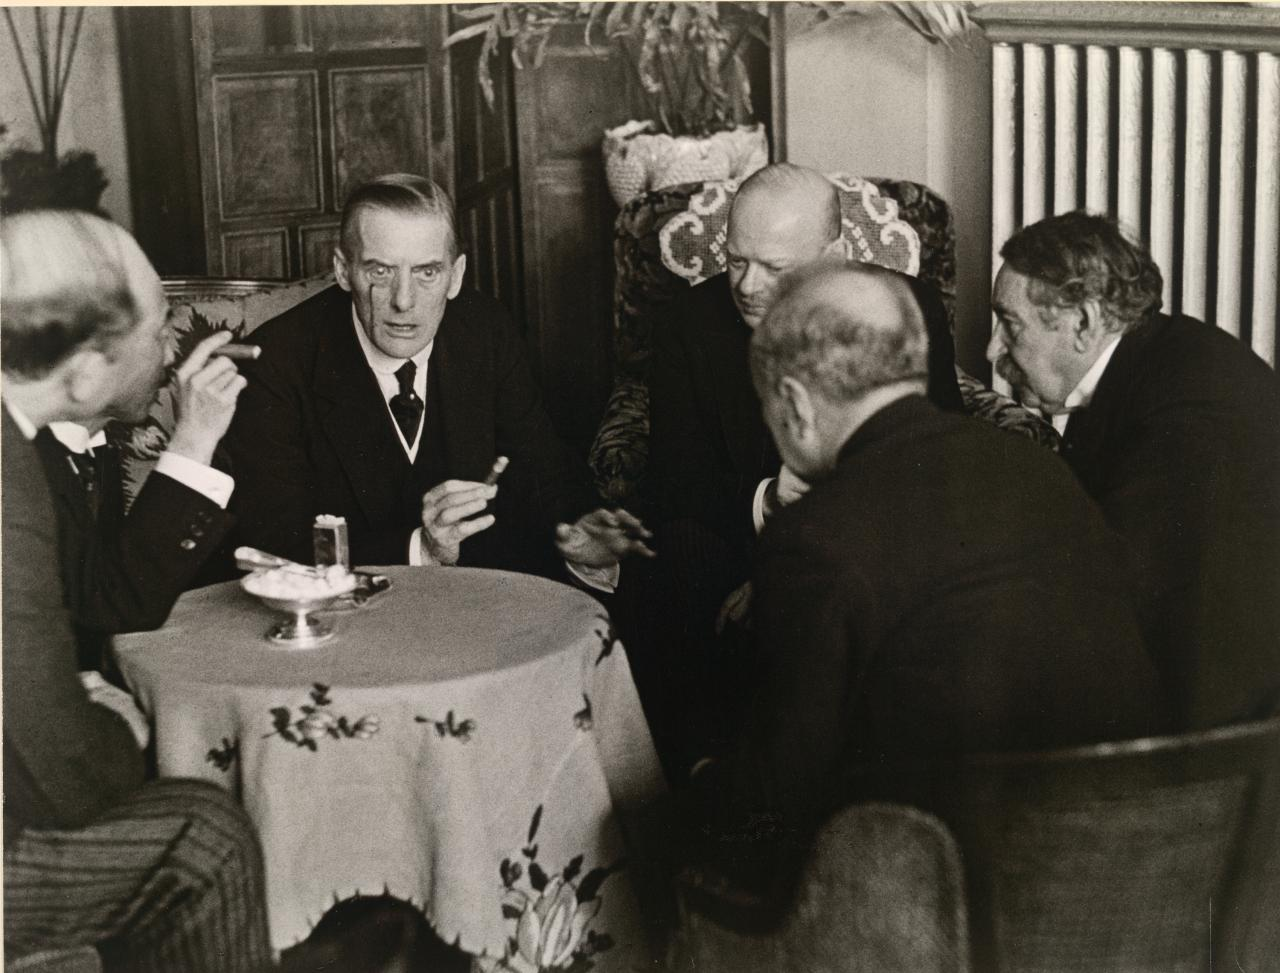 Foreign Ministers Conference on French-German collaboration at the Hotel Splendide, London, 1928